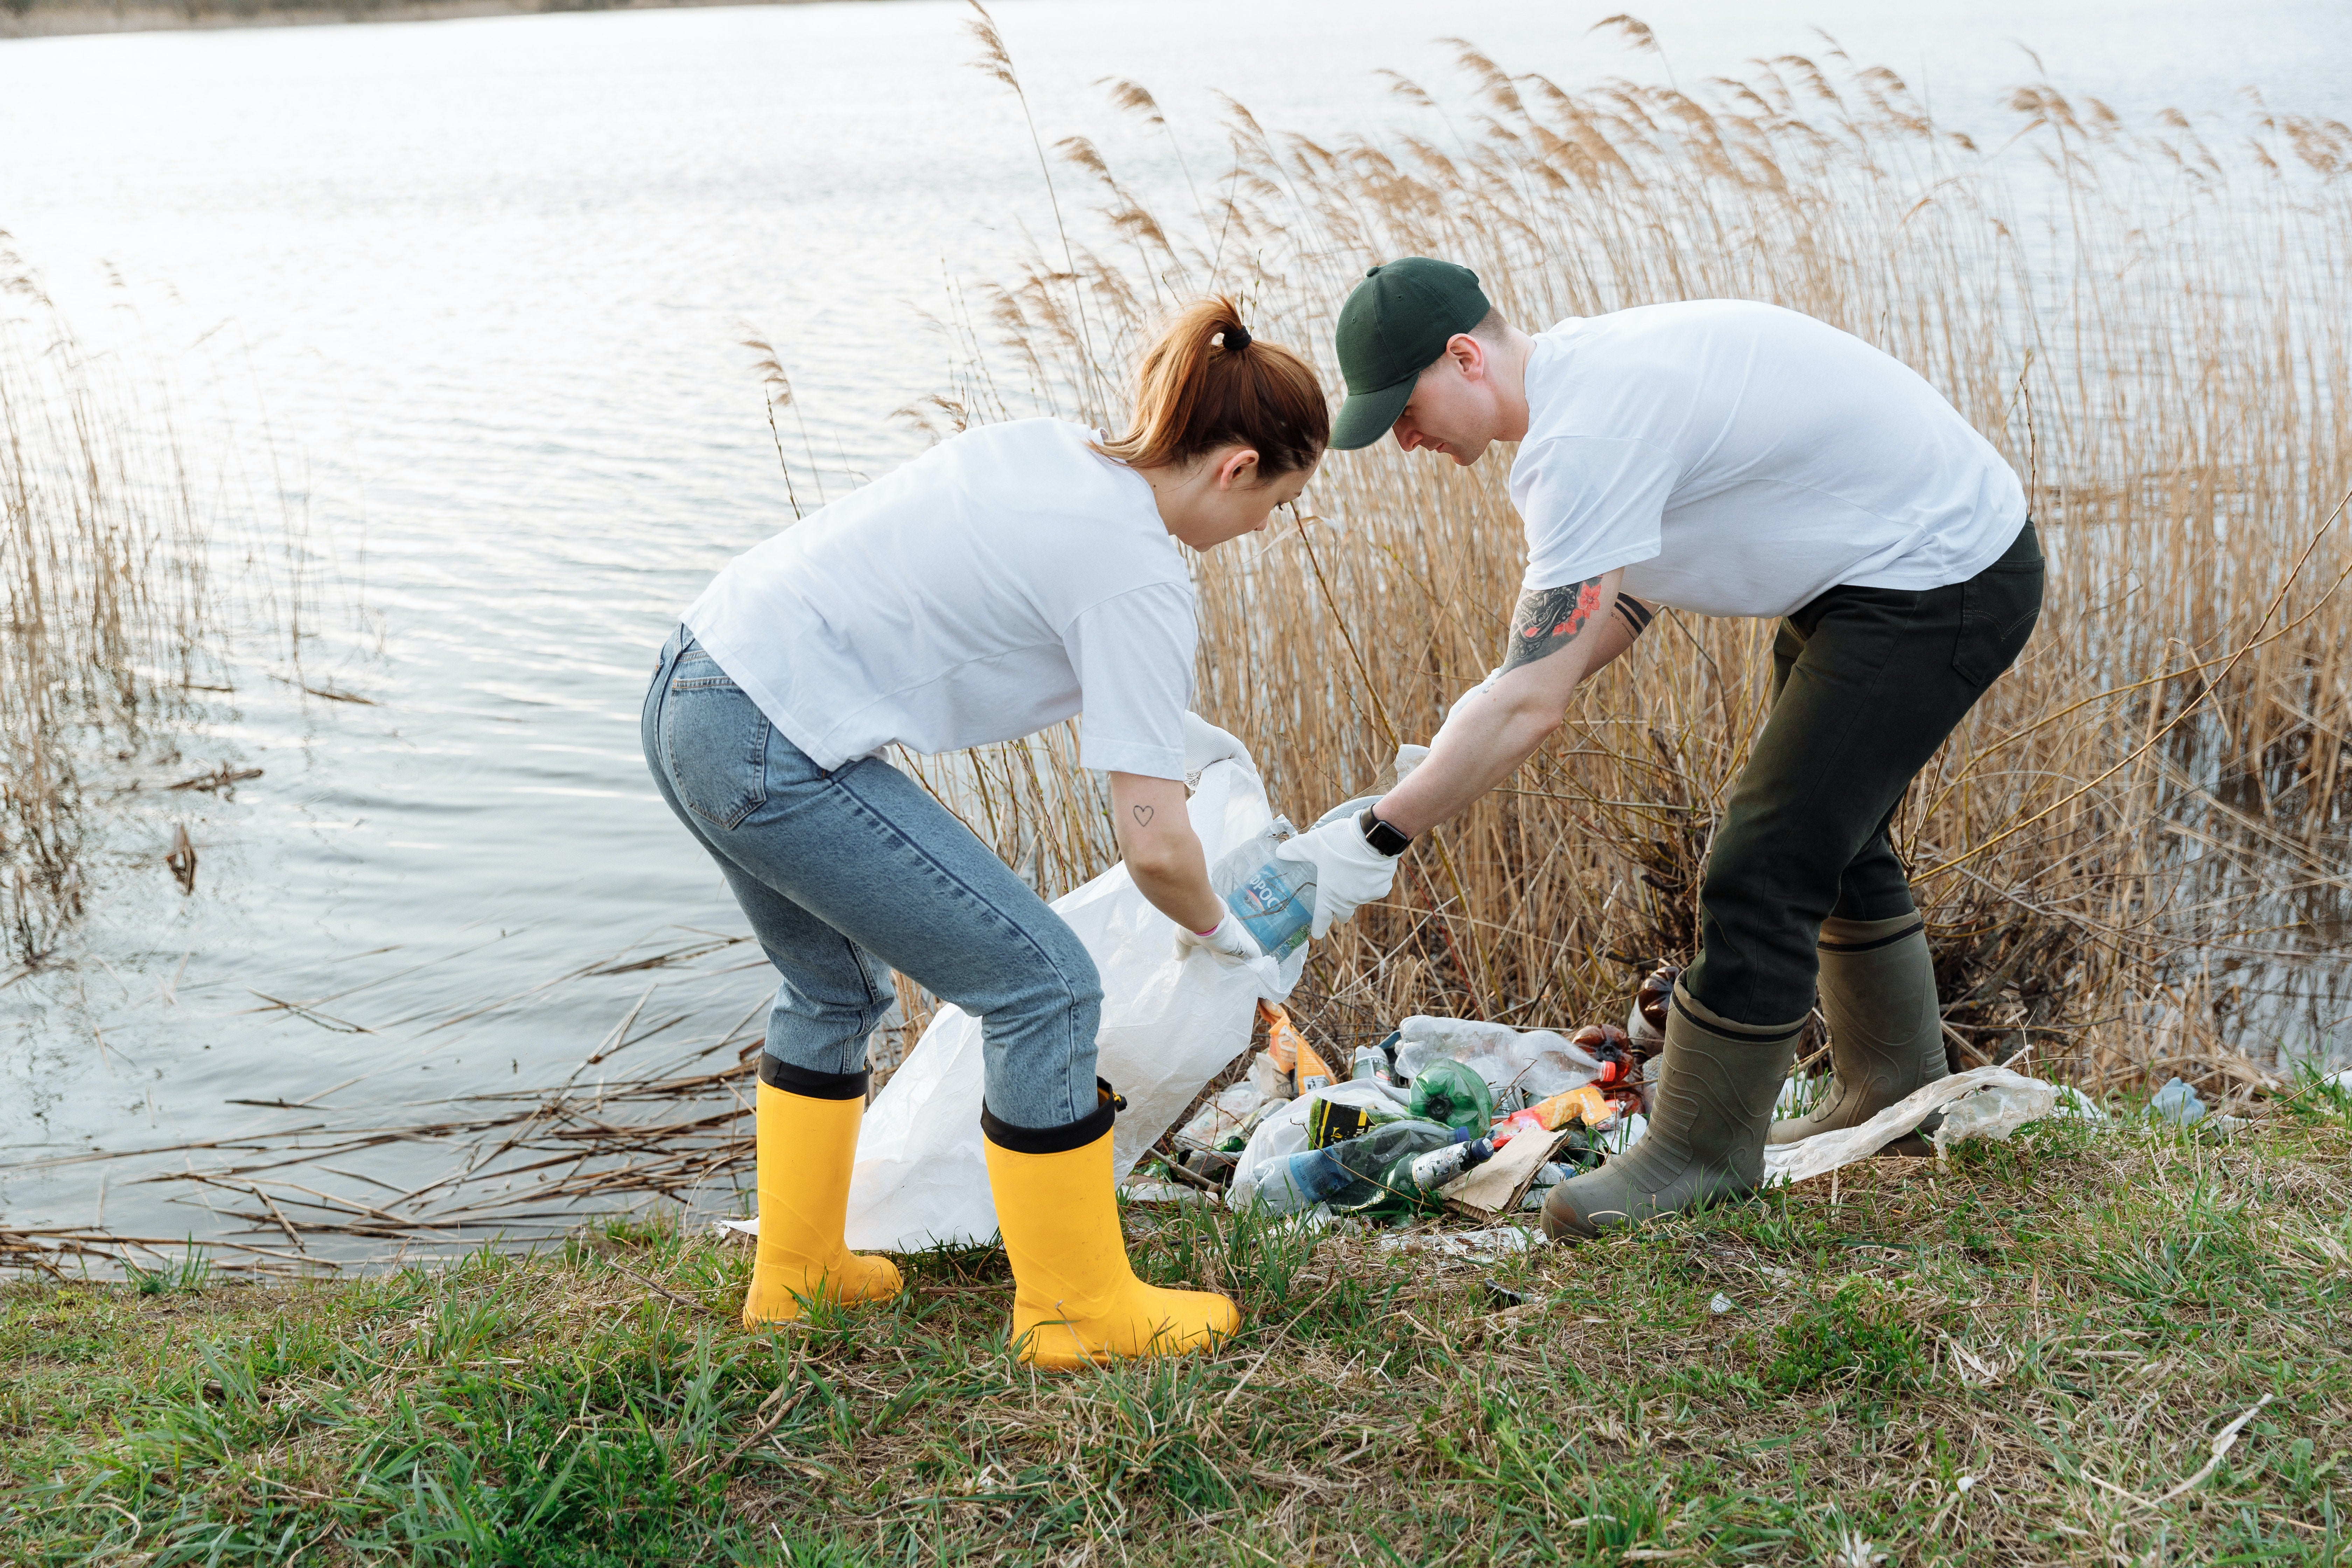 Volunteers clear rubbish from a lake